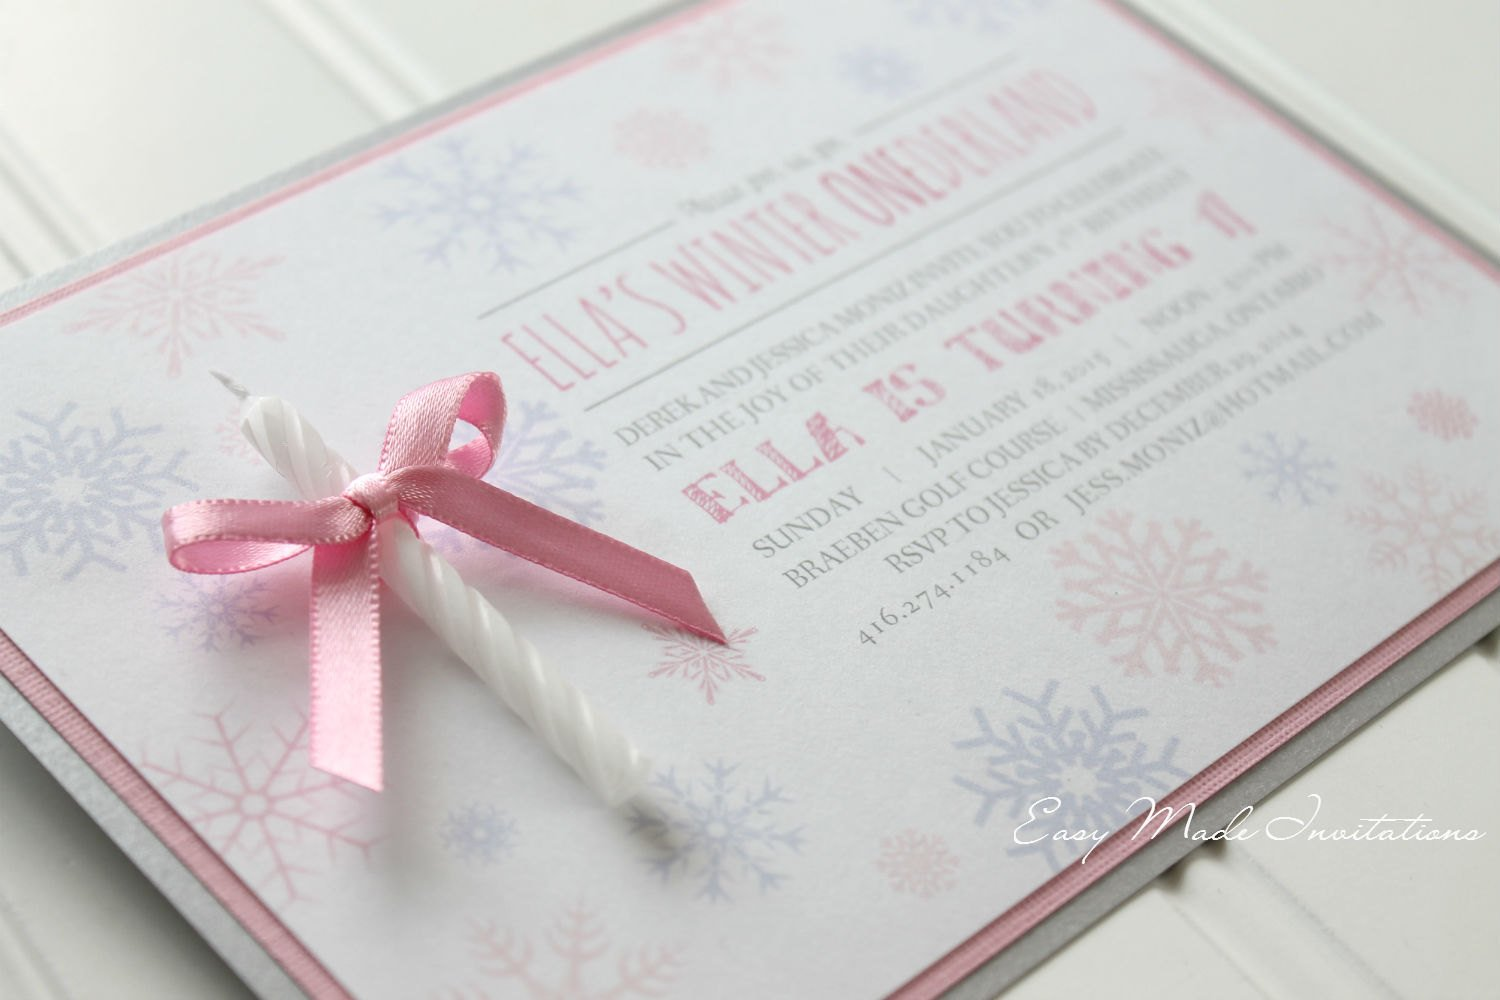 Winter One-derland Candle Invitation